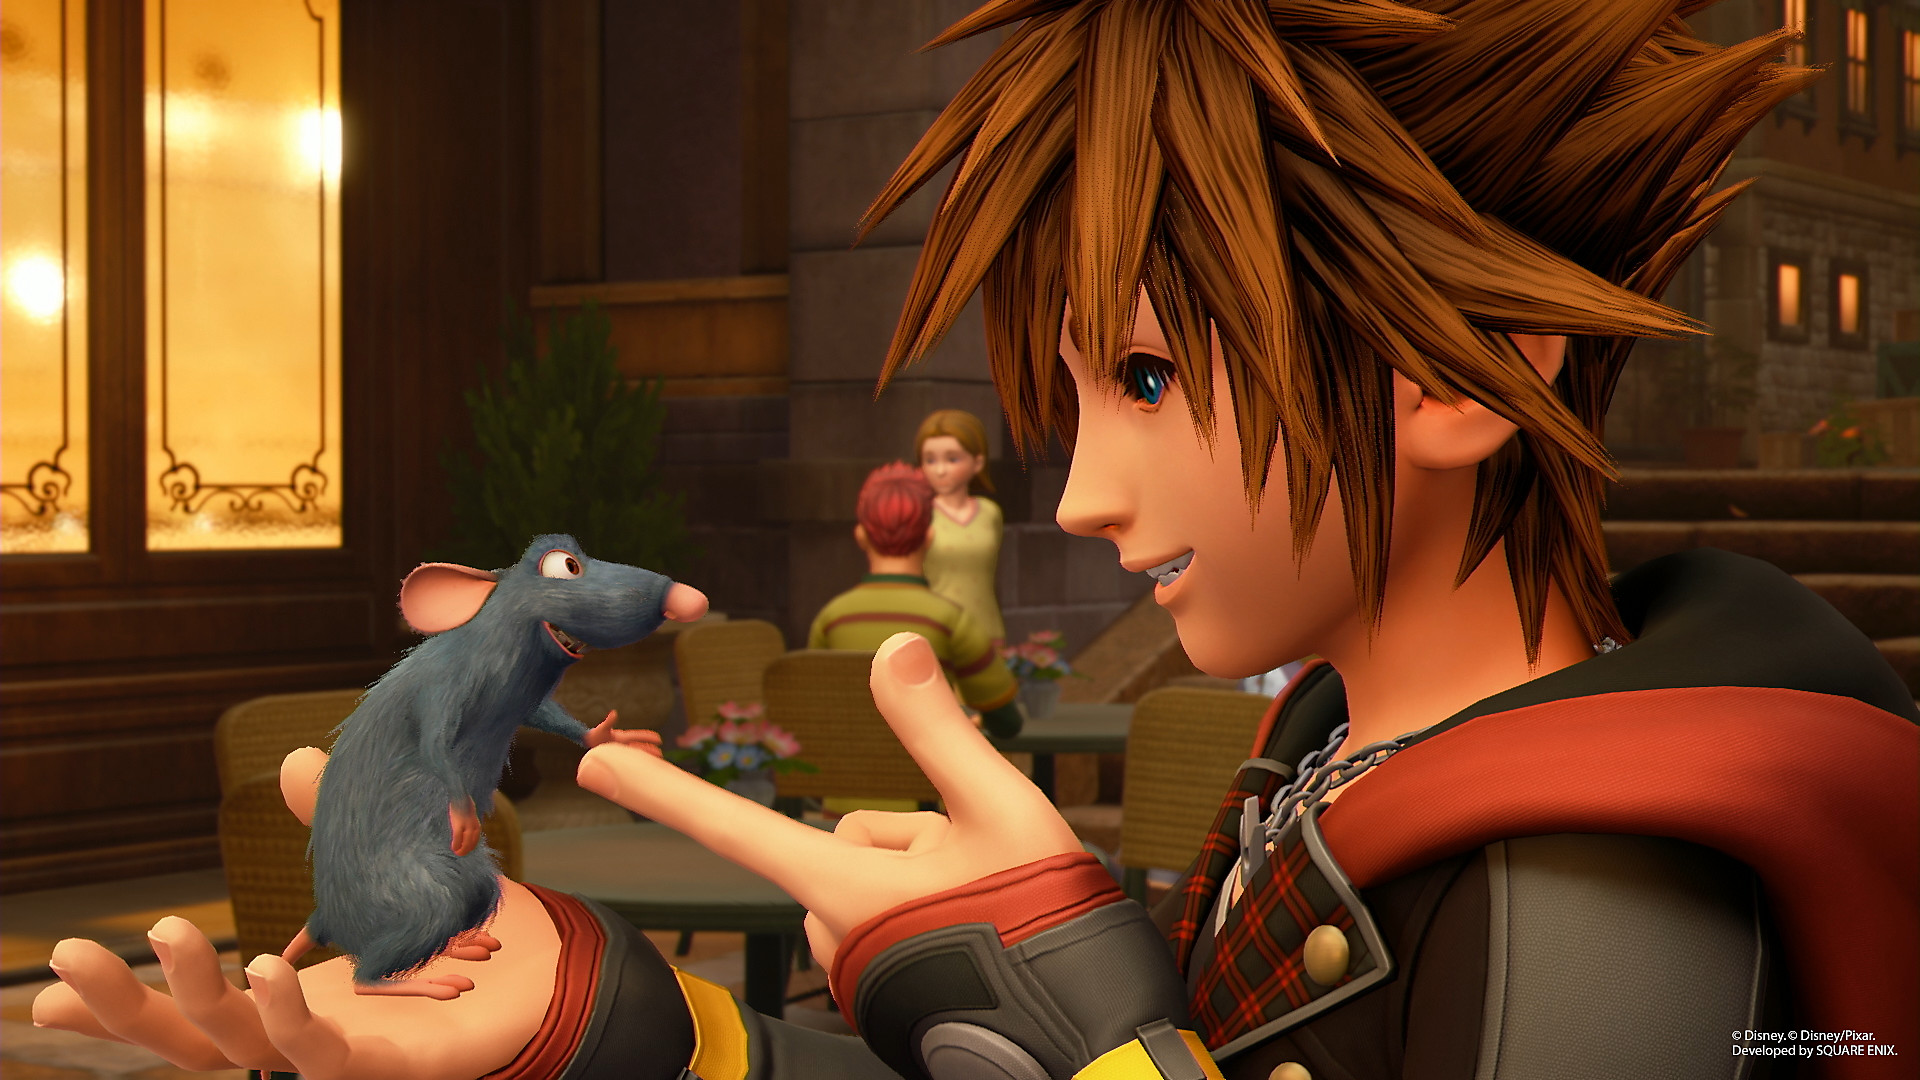 Kingdom Hearts III Screenshot - Sora meeting a new little friend